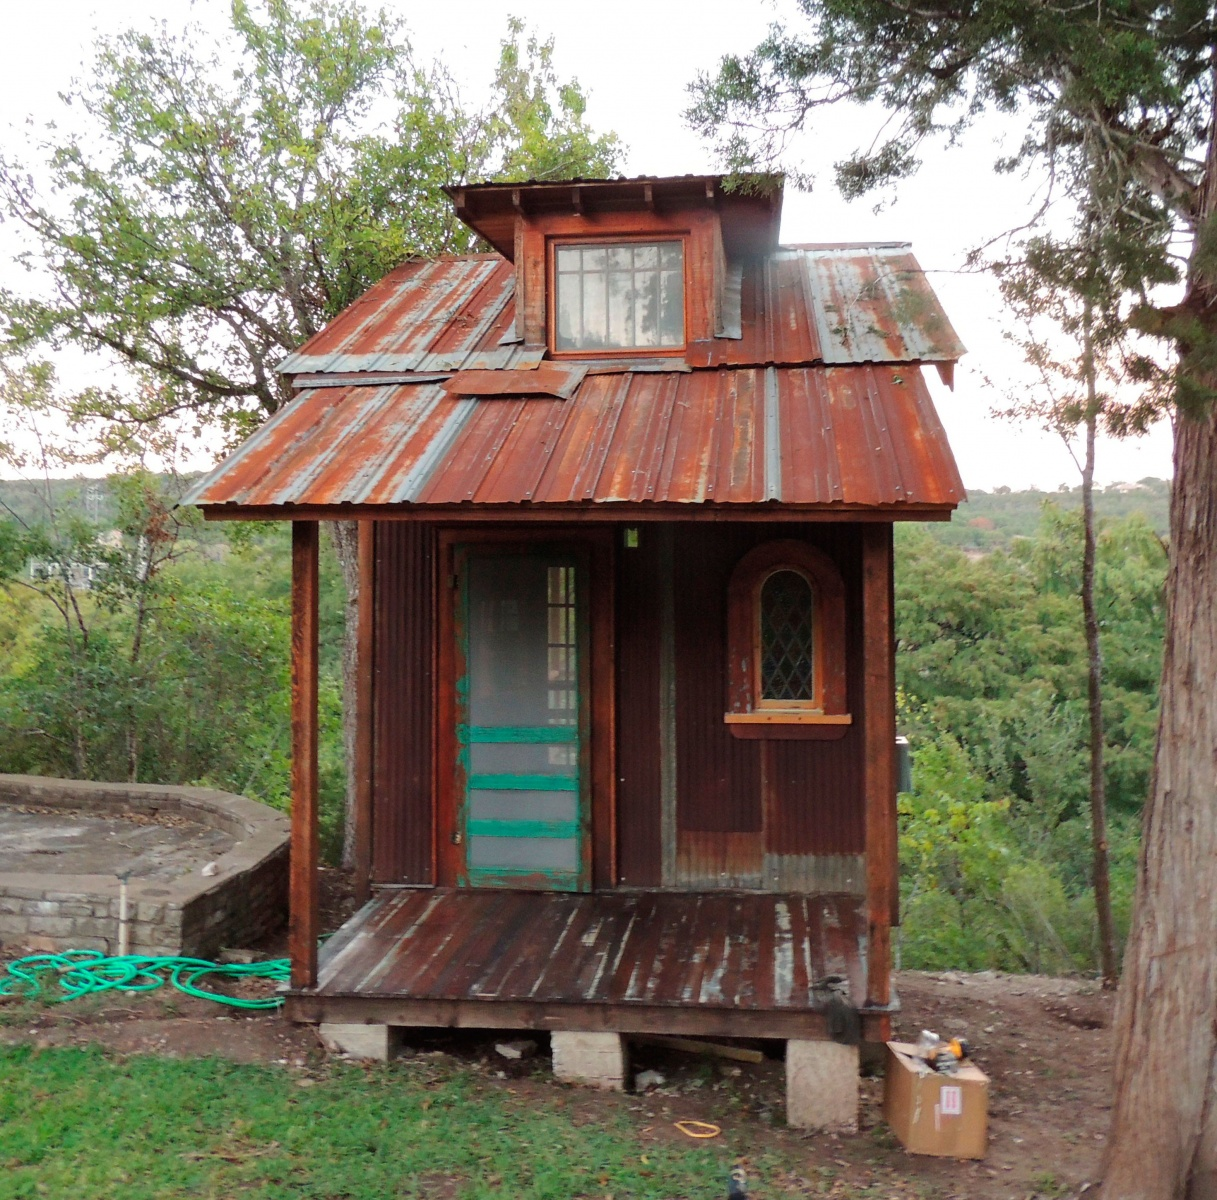 Tiny texas houses 39 recent work the shelter blog for Building a little house